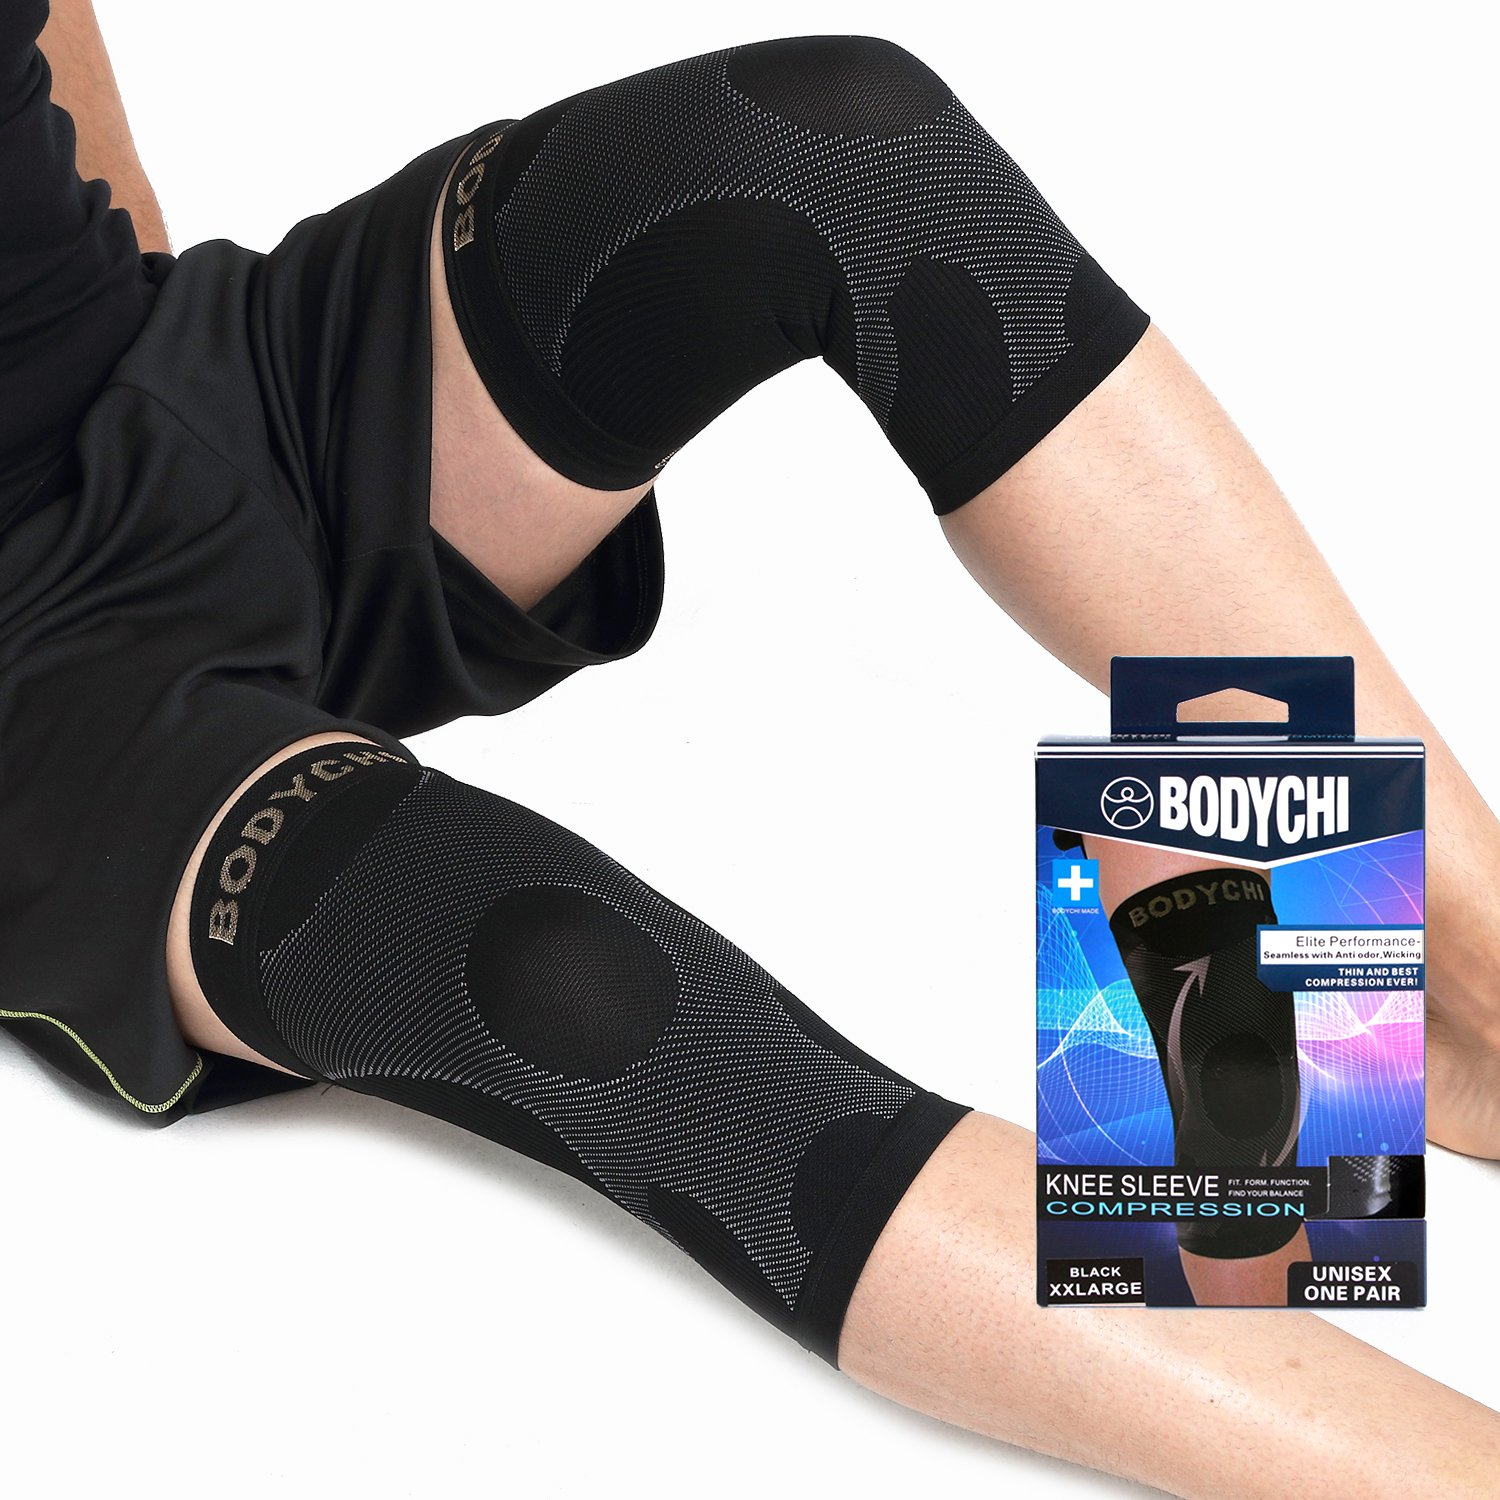 BODYCHI Men and Women Seamless 20-30 mmHg Compression Knee Support Sleeve for Joint Protection and Support for Running, Sports, Knee Pain Relief, Knee Sleeve, Comes in a Pair, Large by BODYCHI (Image #1)